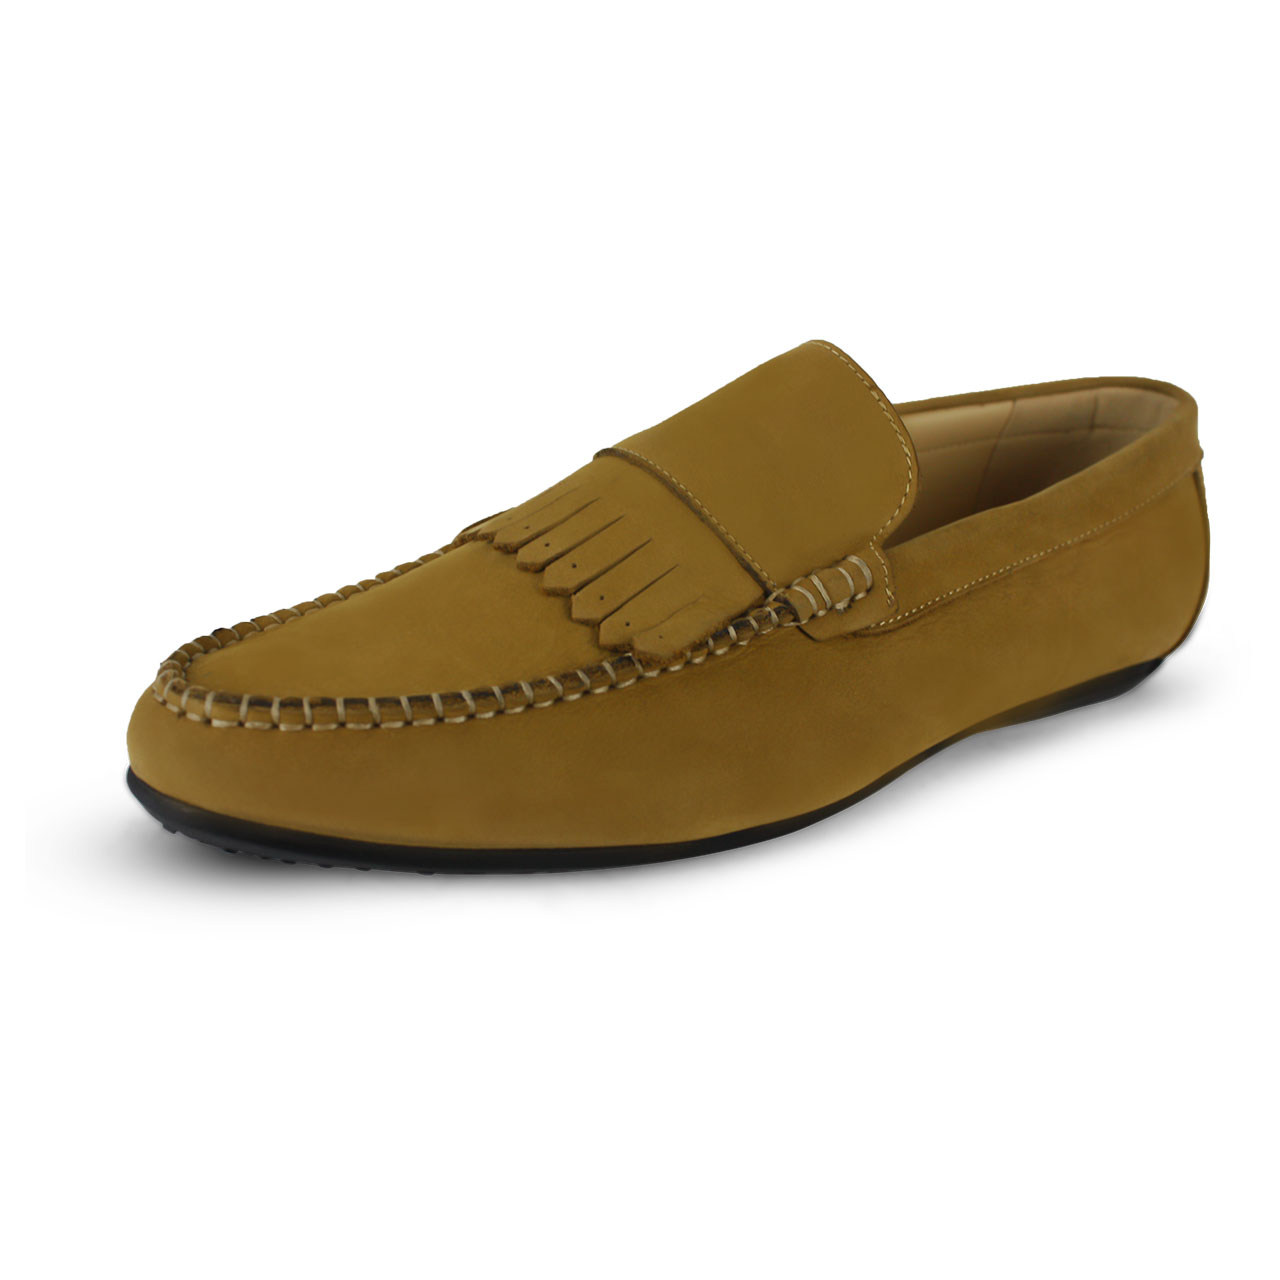 Men's Party Slip On Tassel Casual Loafers